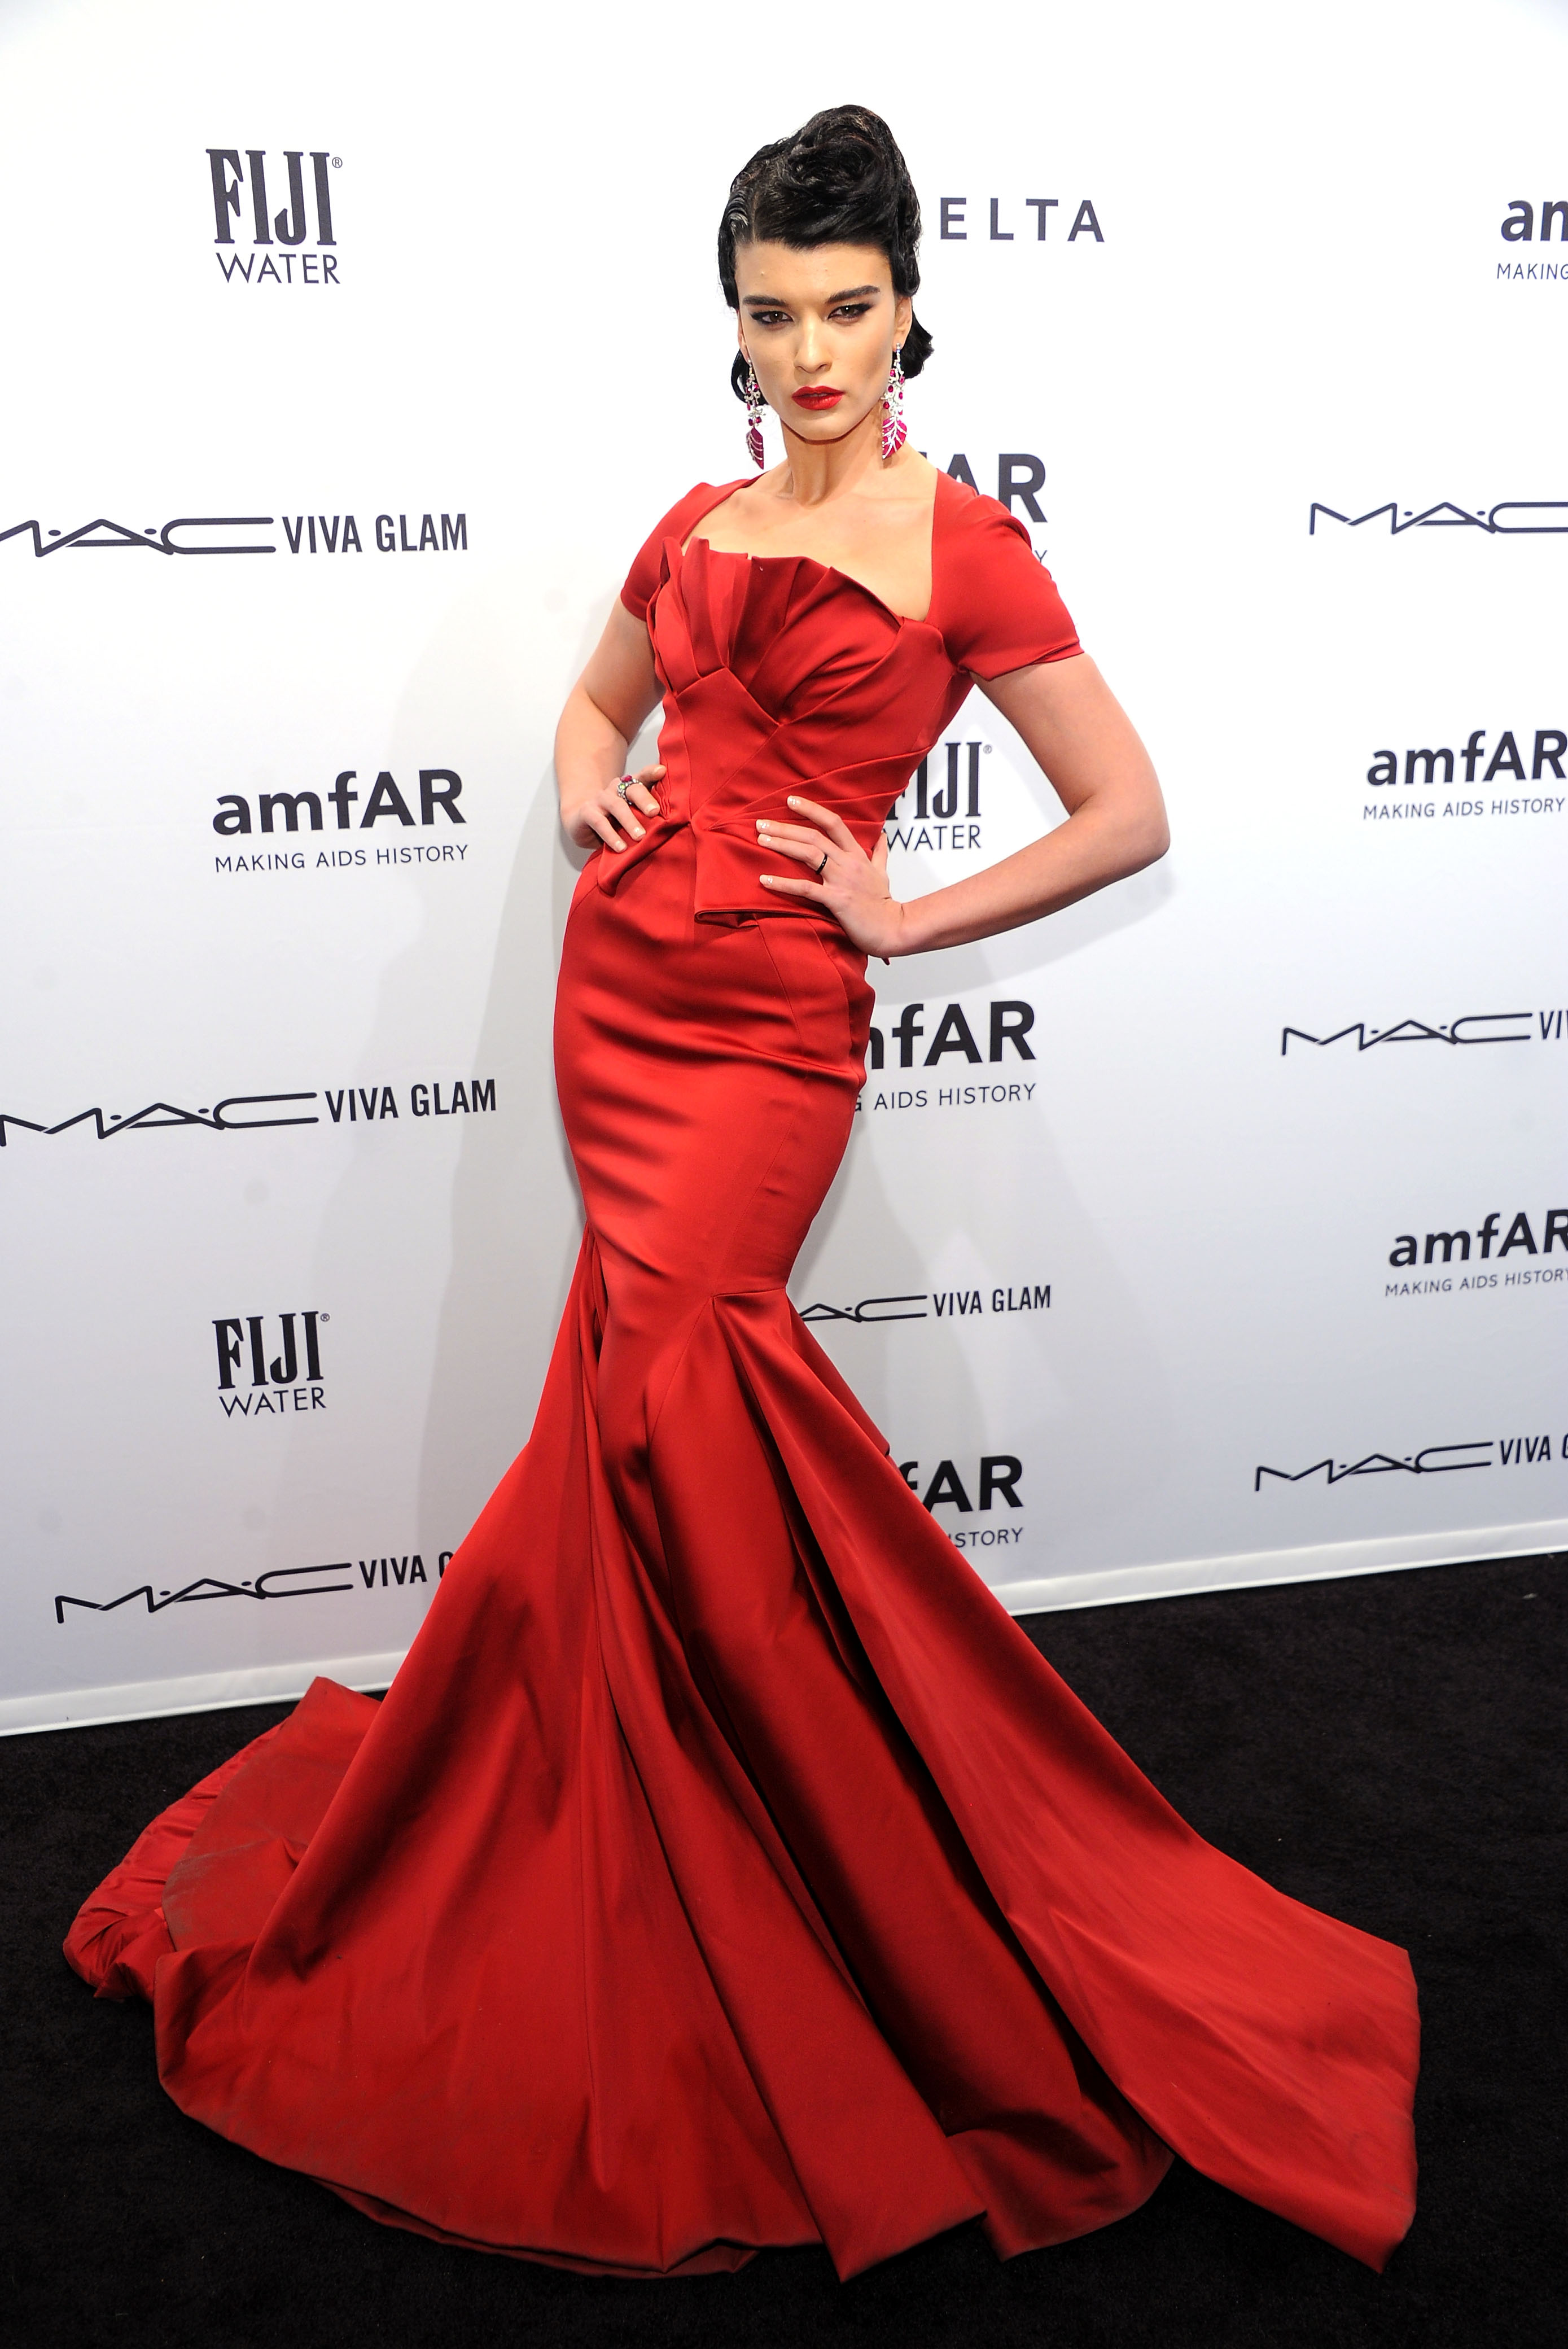 Crystal Renn attended the amfAR New York Gala in a floor-length red gown by Zac Posen.